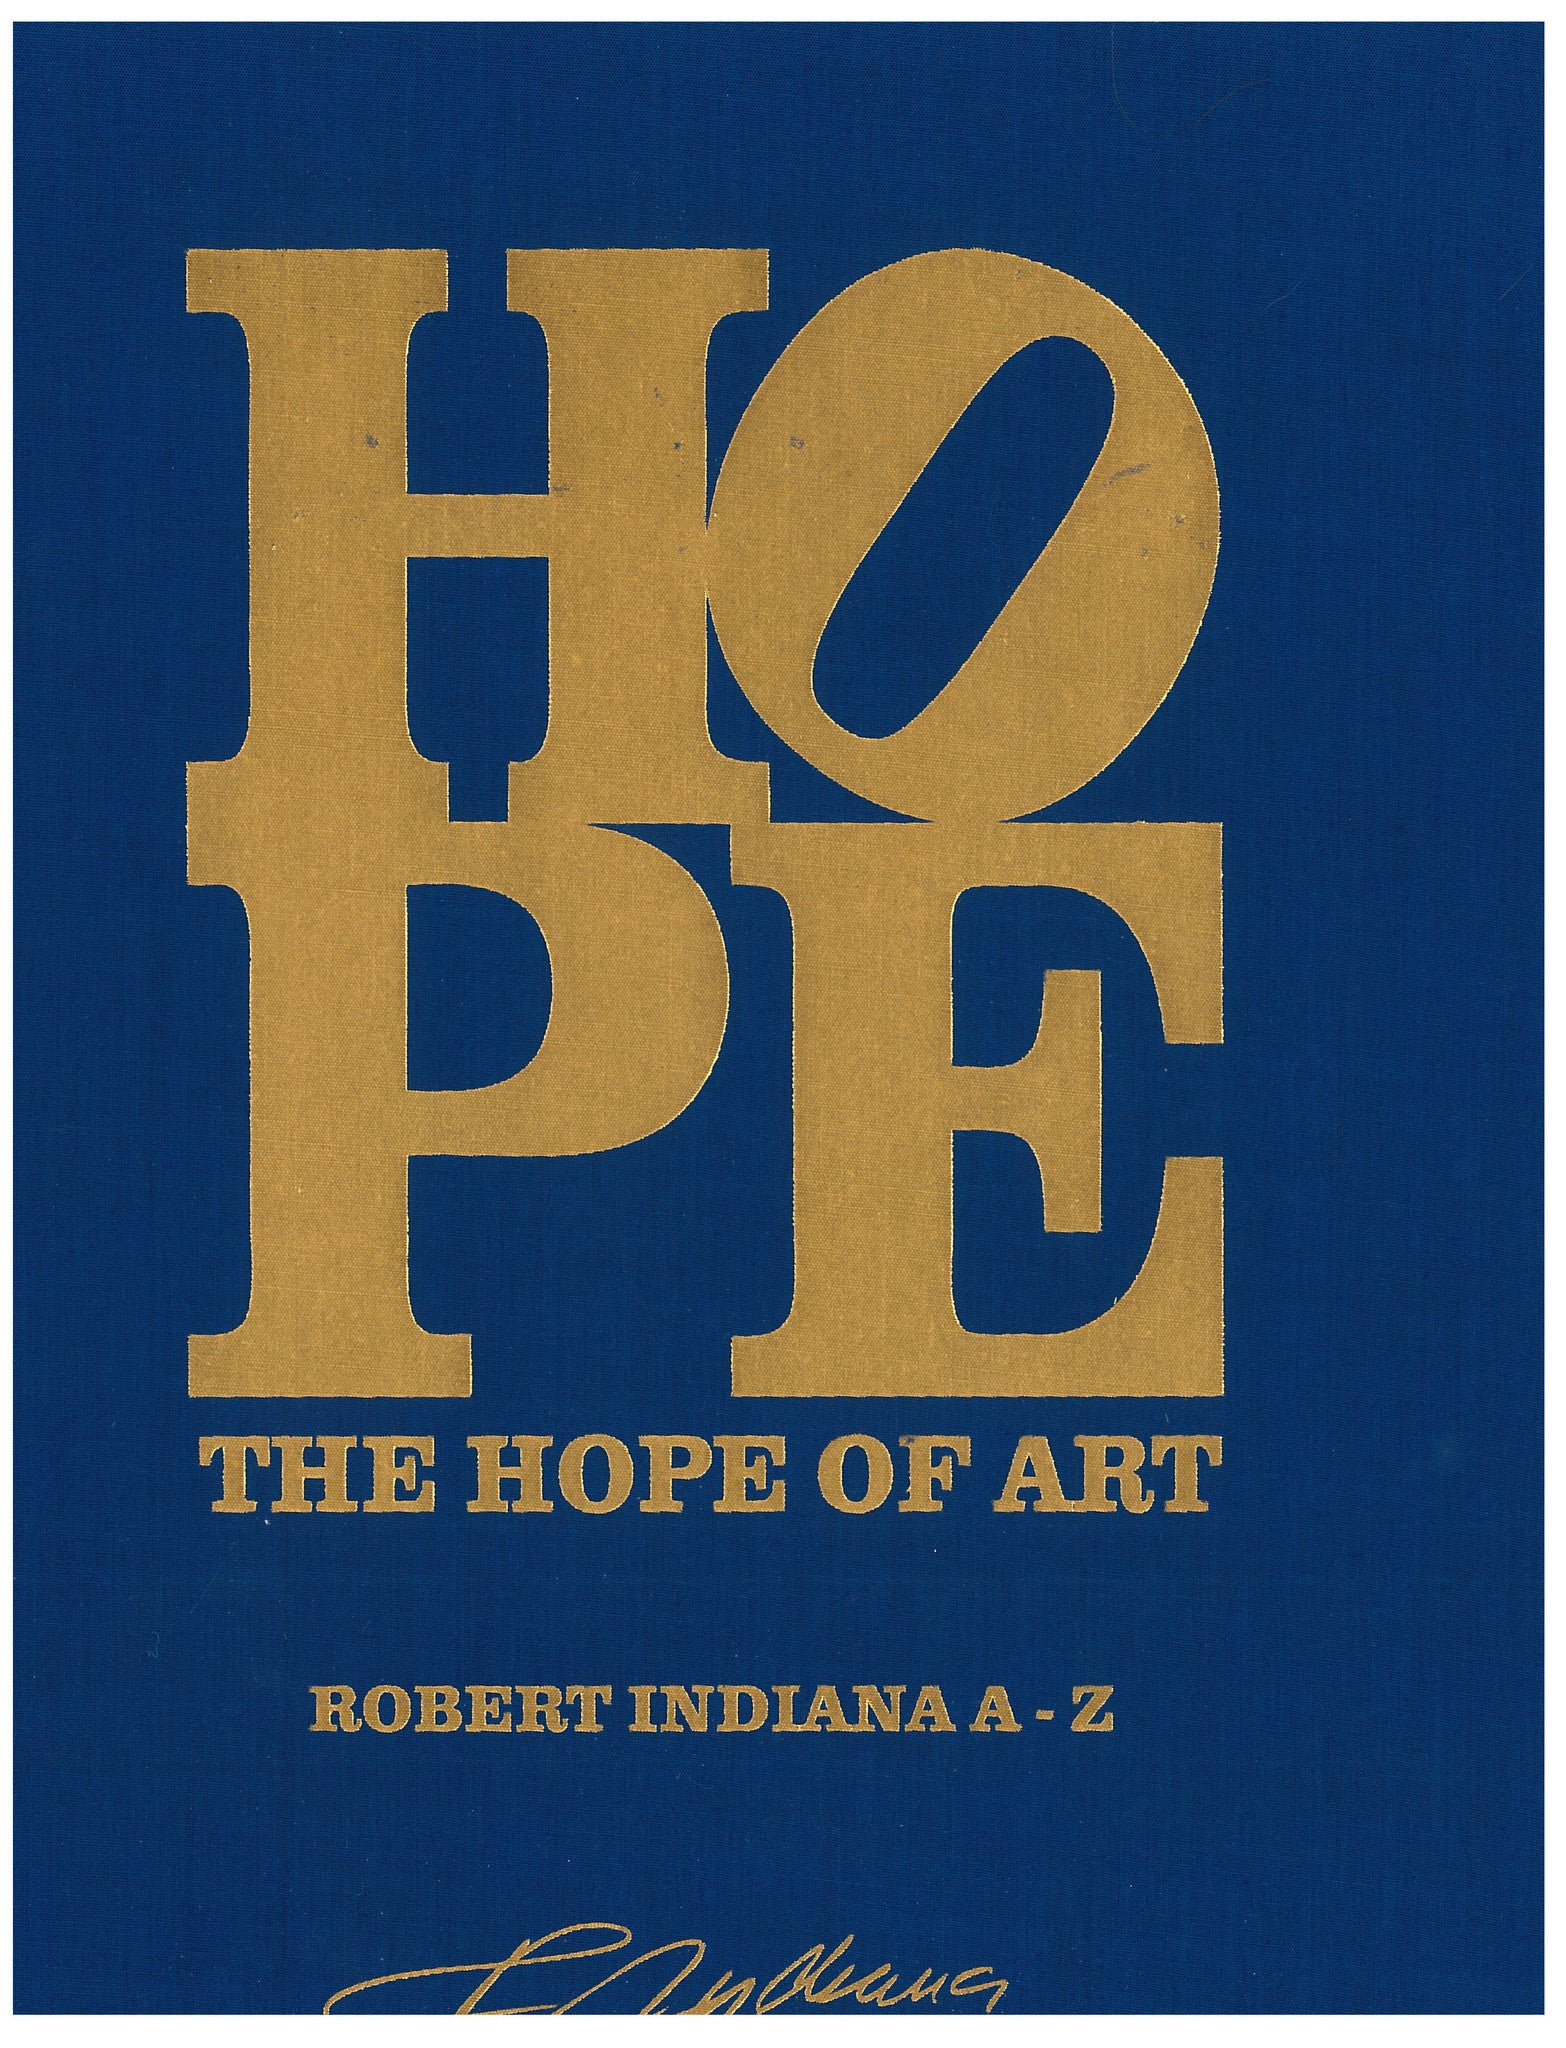 Robert Indiana: A-Z (The Art of Hope) - Books, Museum Publications